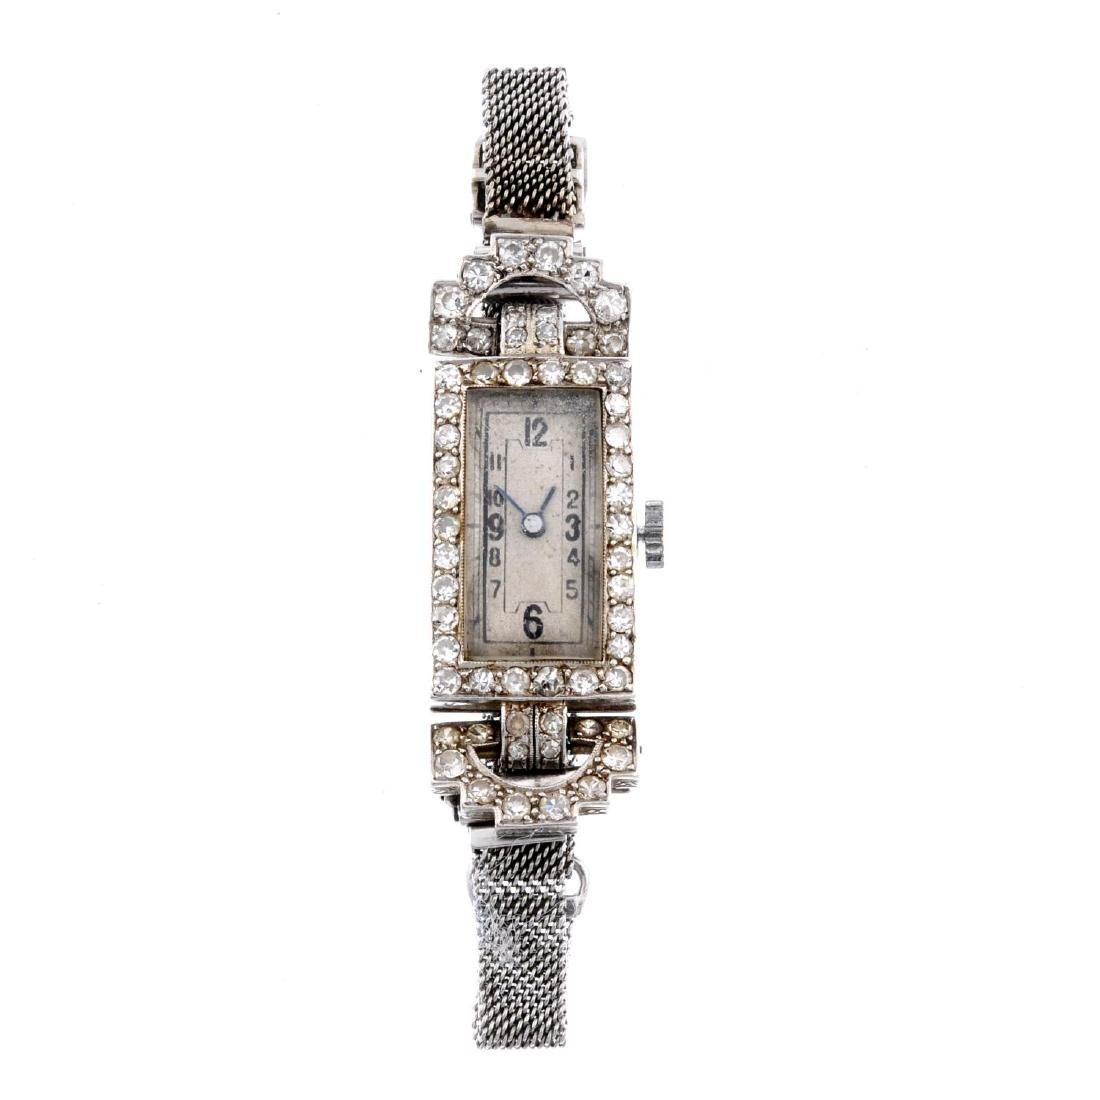 A lady's cocktail watch by Flora Watch Co. White metal